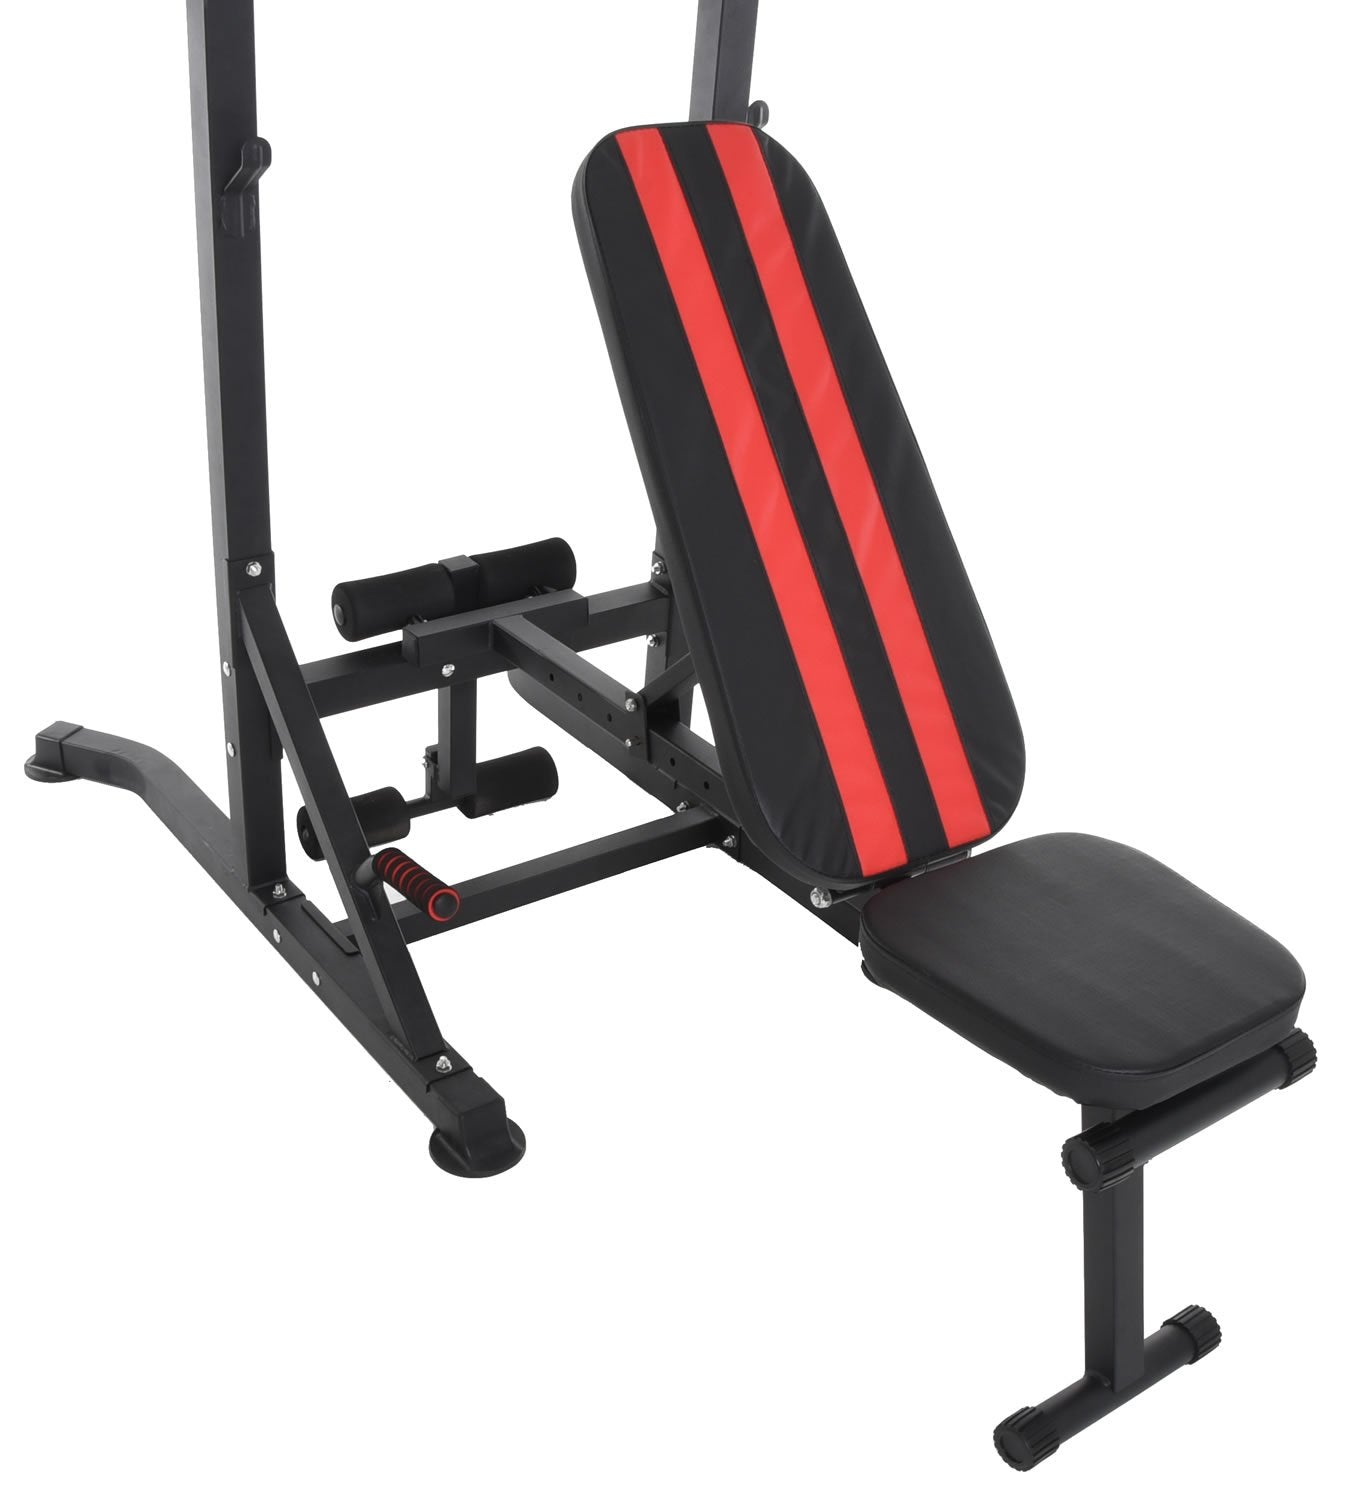 Folding Adjustable Weight Bench Multi-functional Home Gym Exercise Fitness Bench